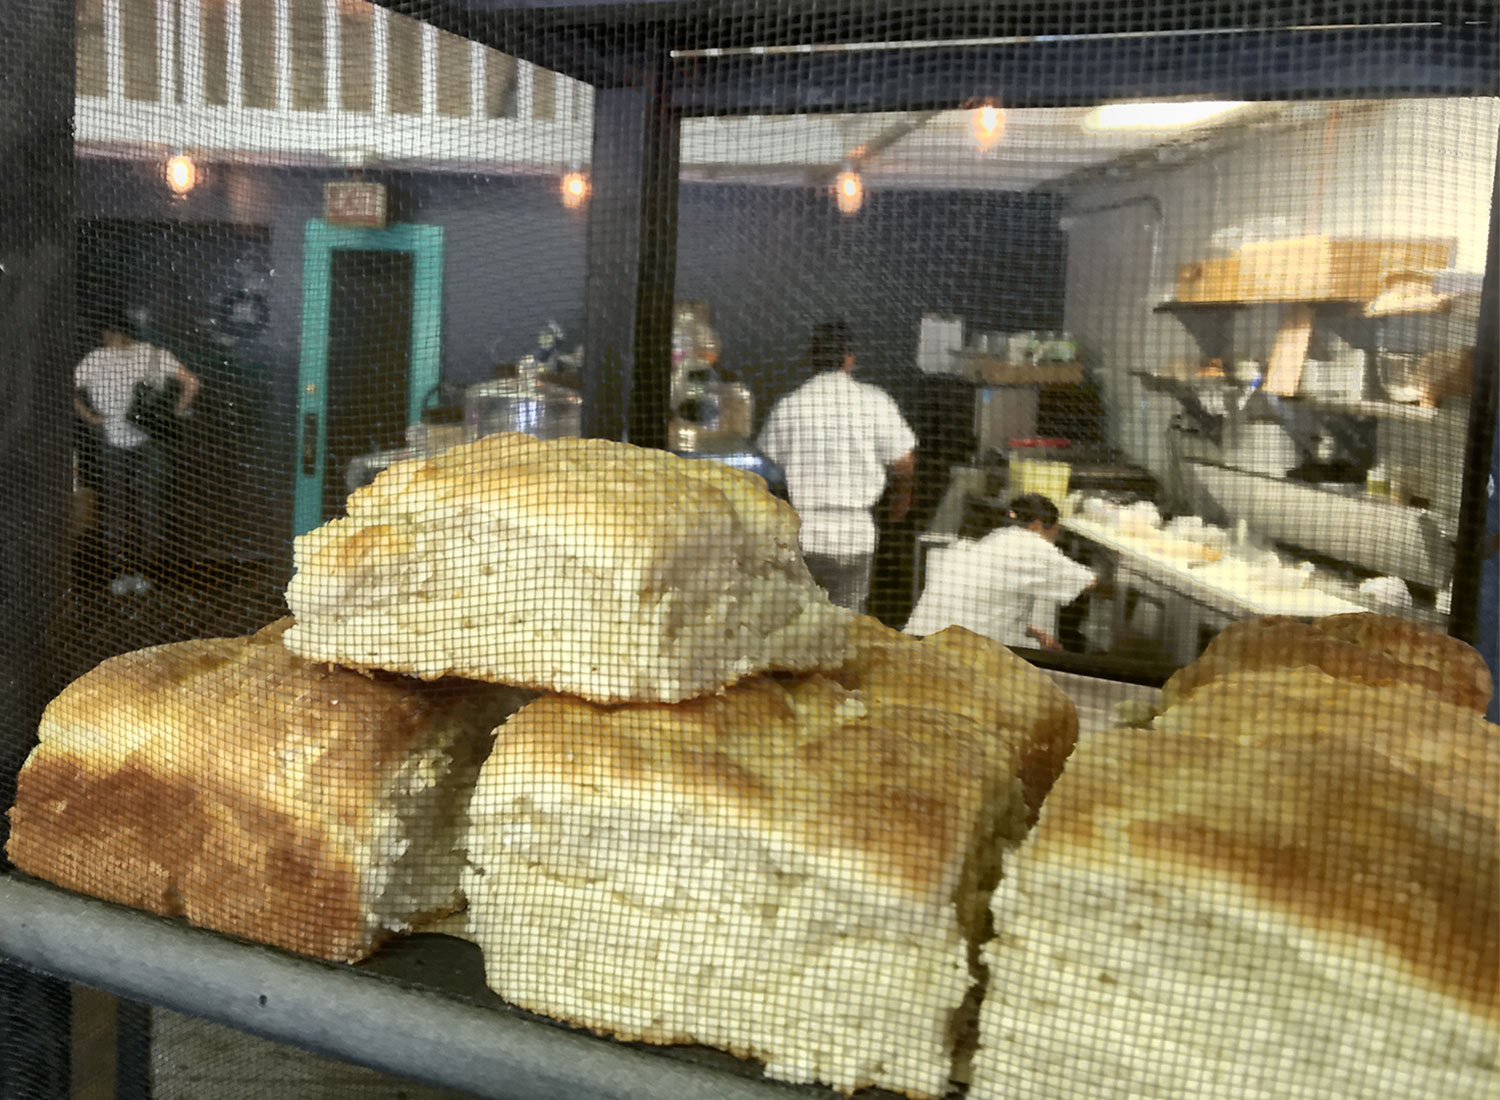 Big Bottom Biscuits in Guerneville